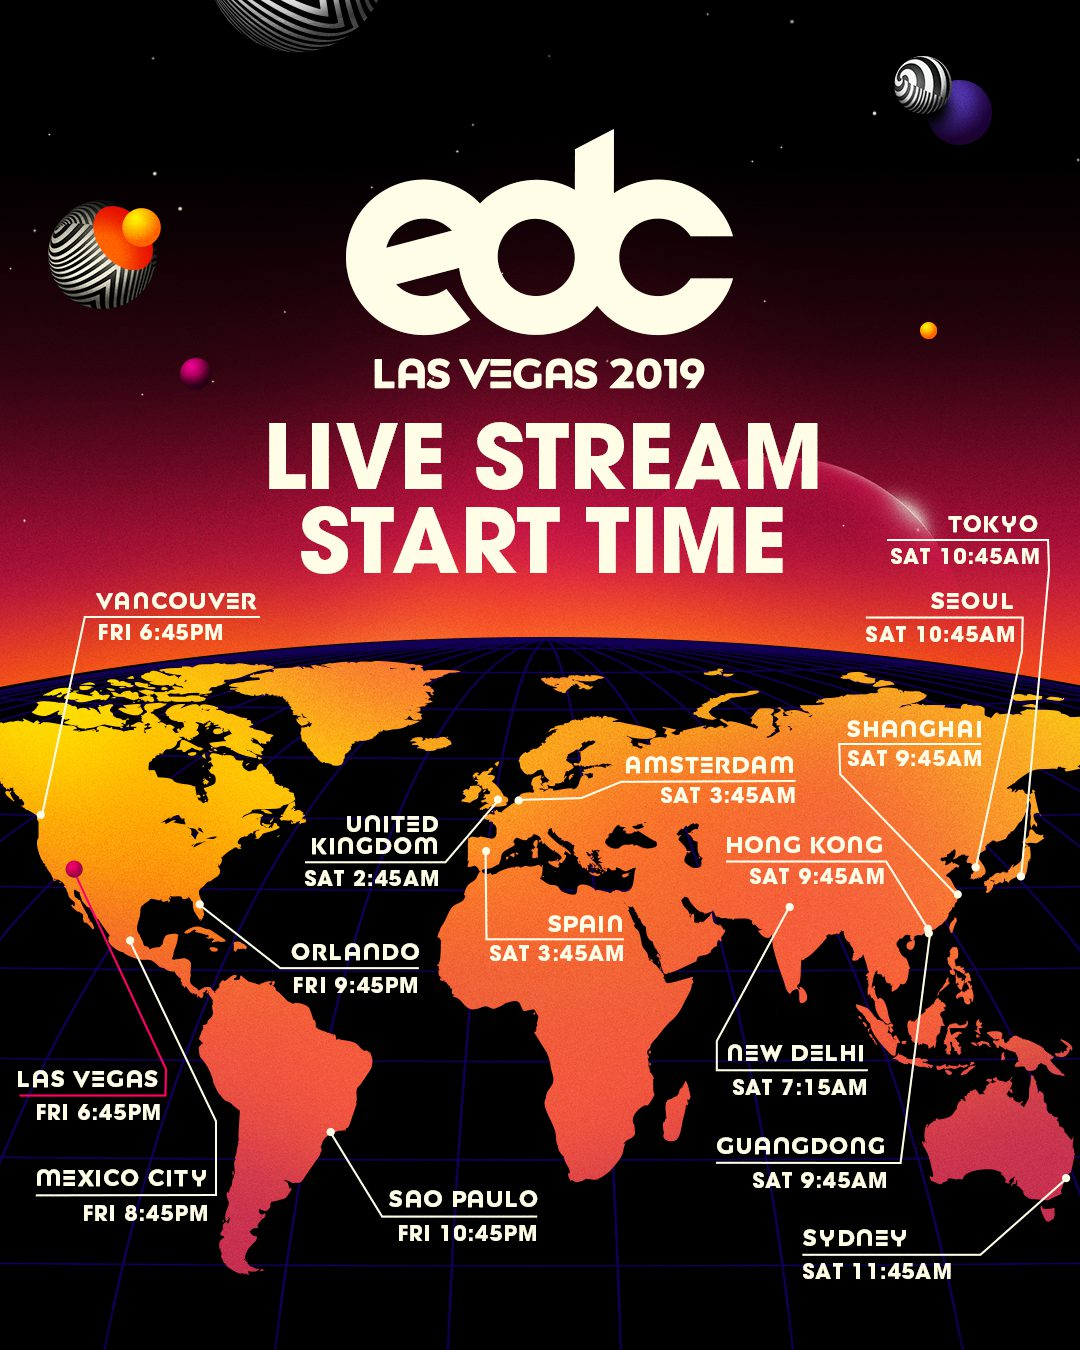 EDC Las Vegas 2019 Live Stream Start Time